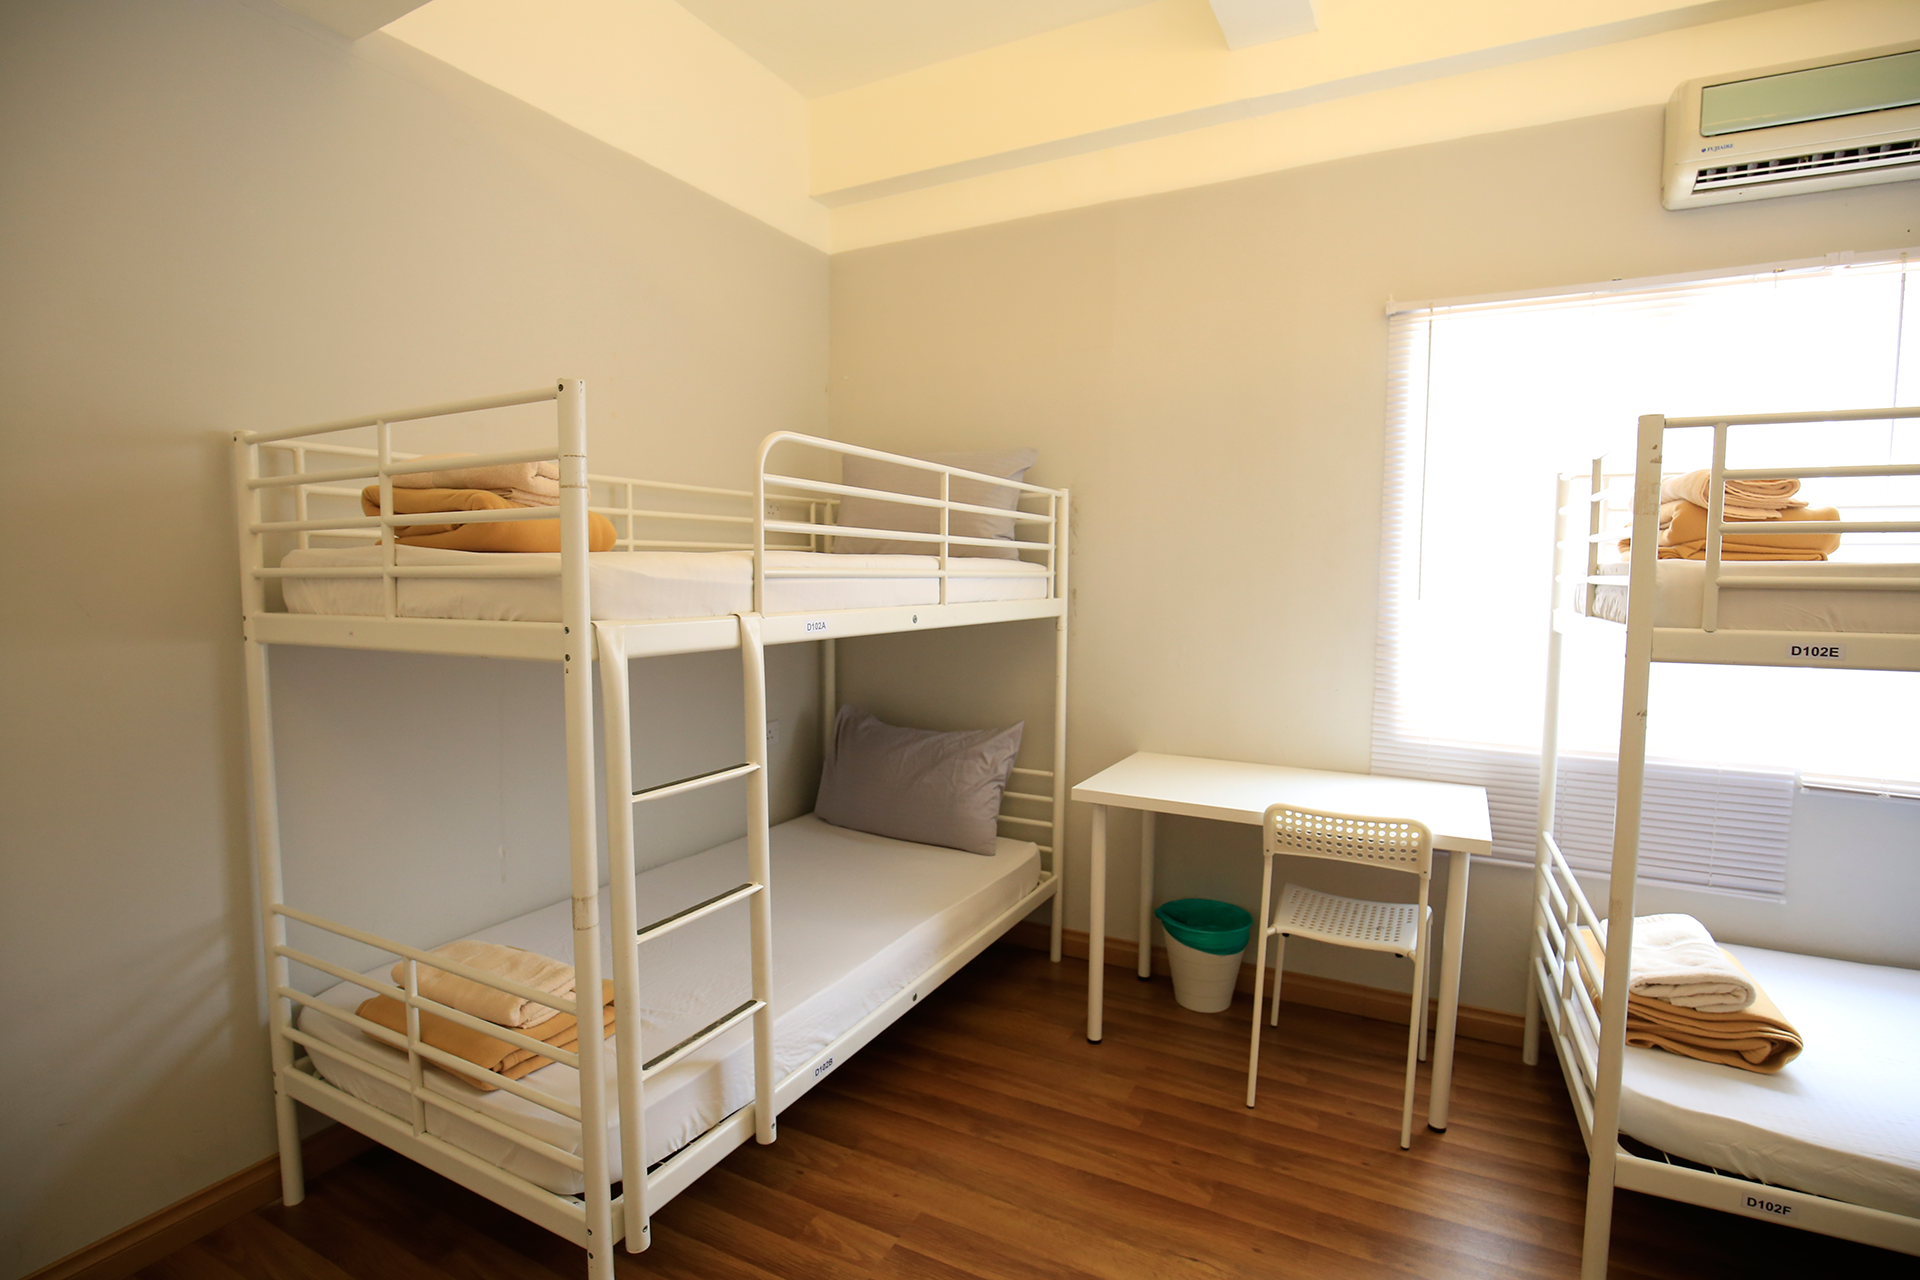 Dormitory 4-Bed